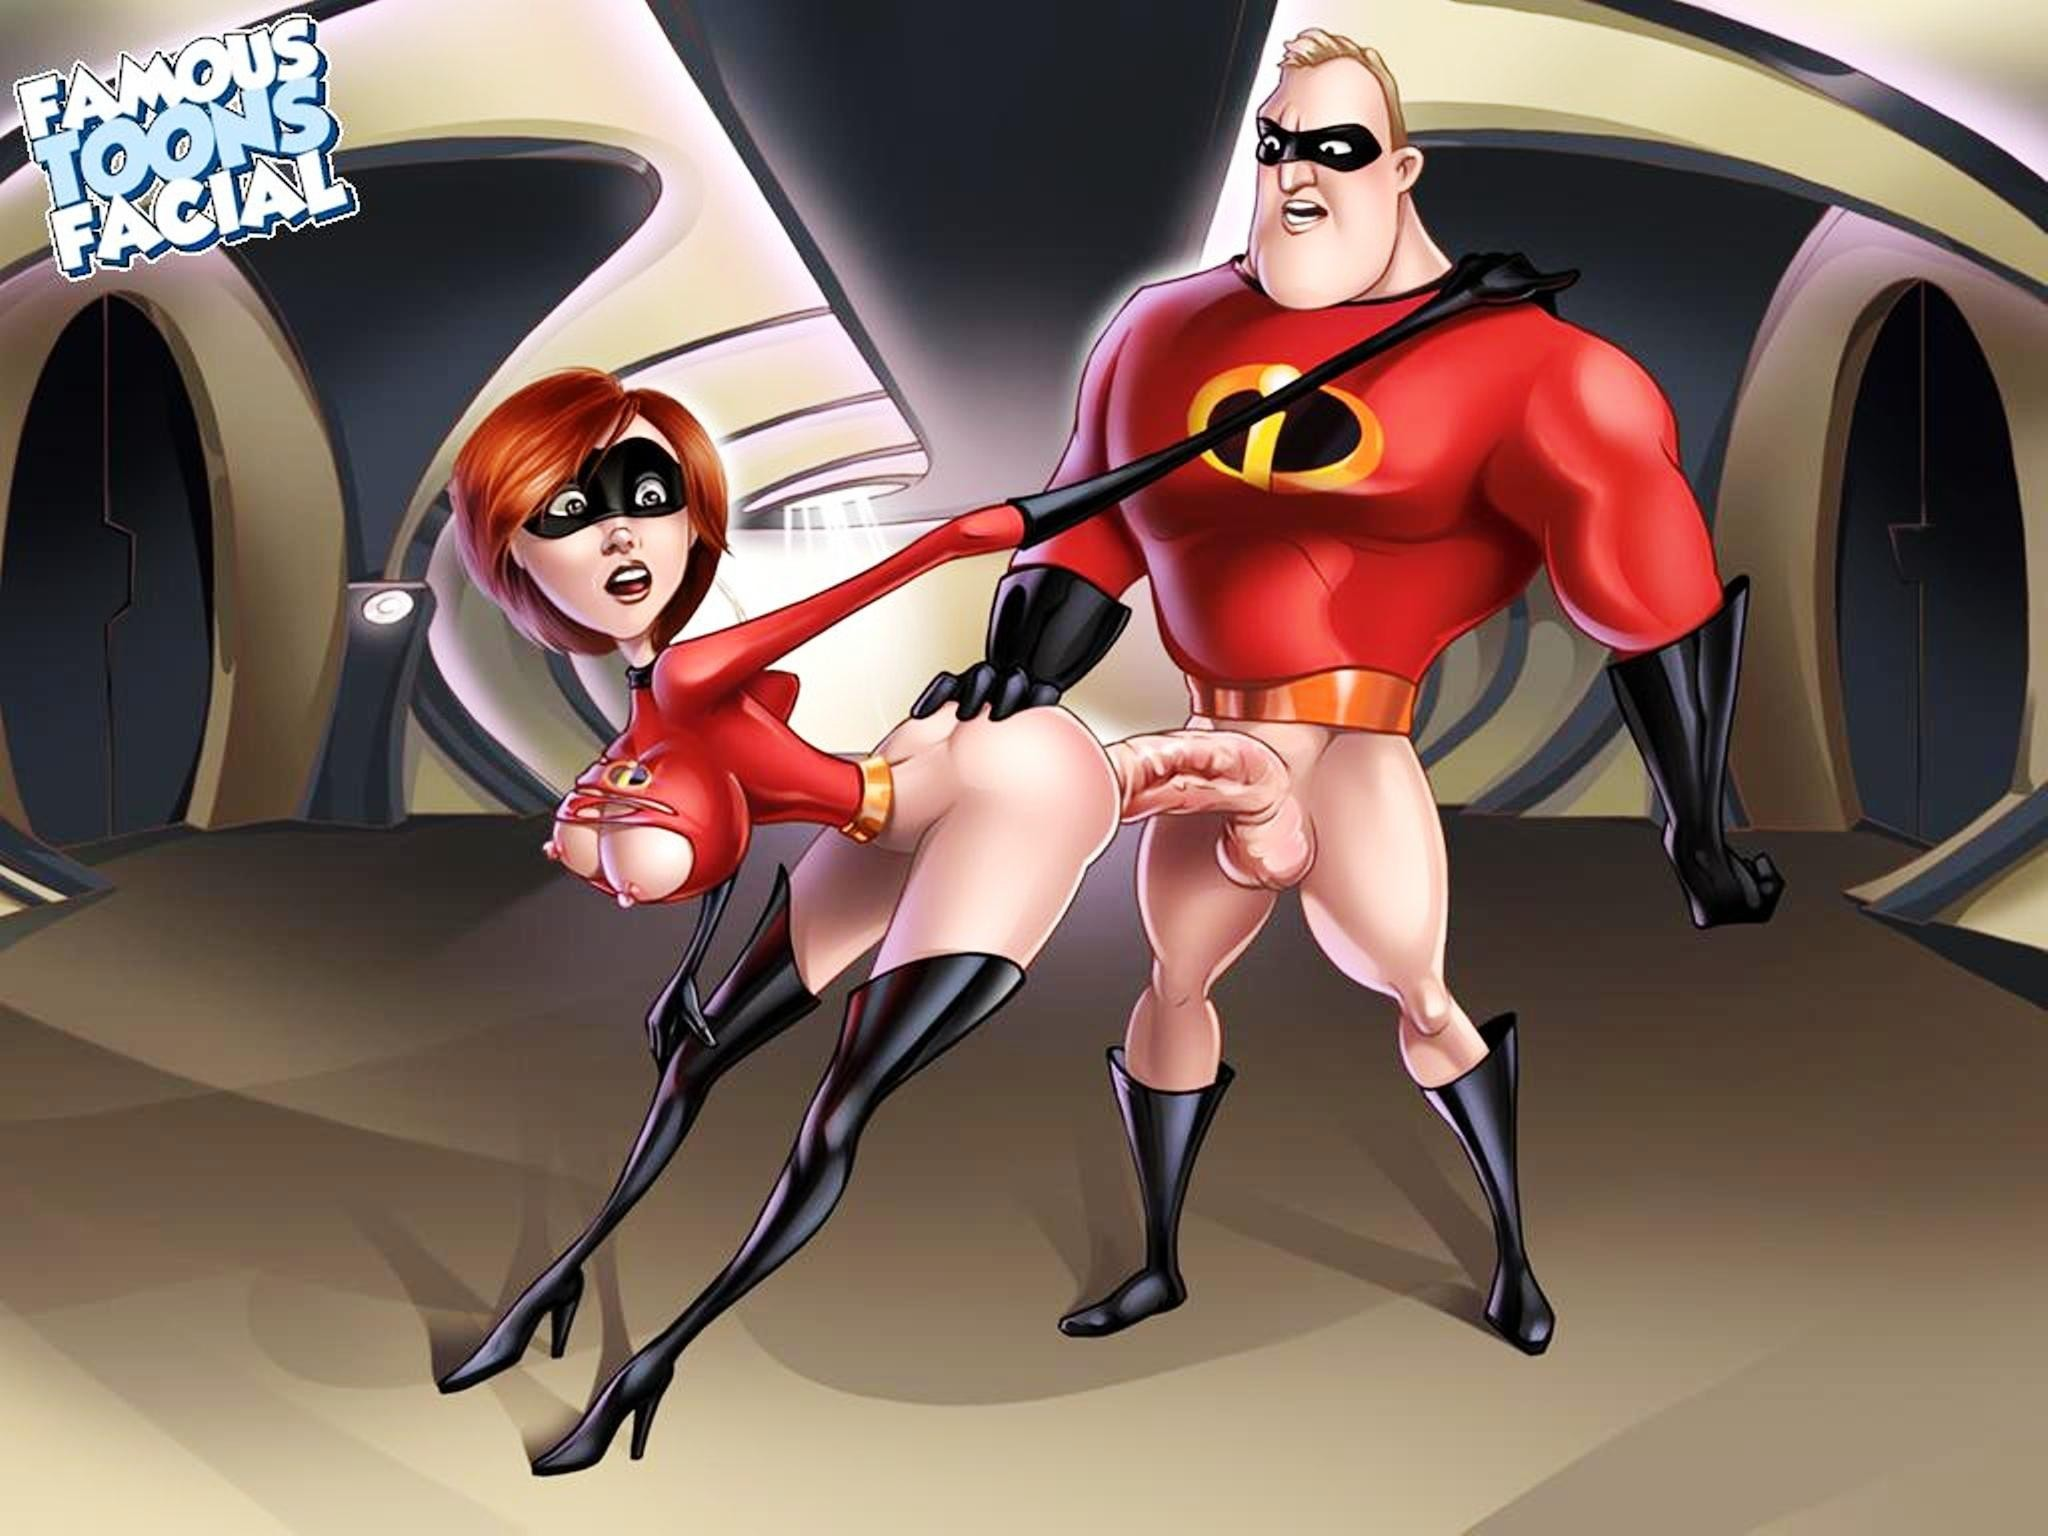 Incredibles porn porn photo